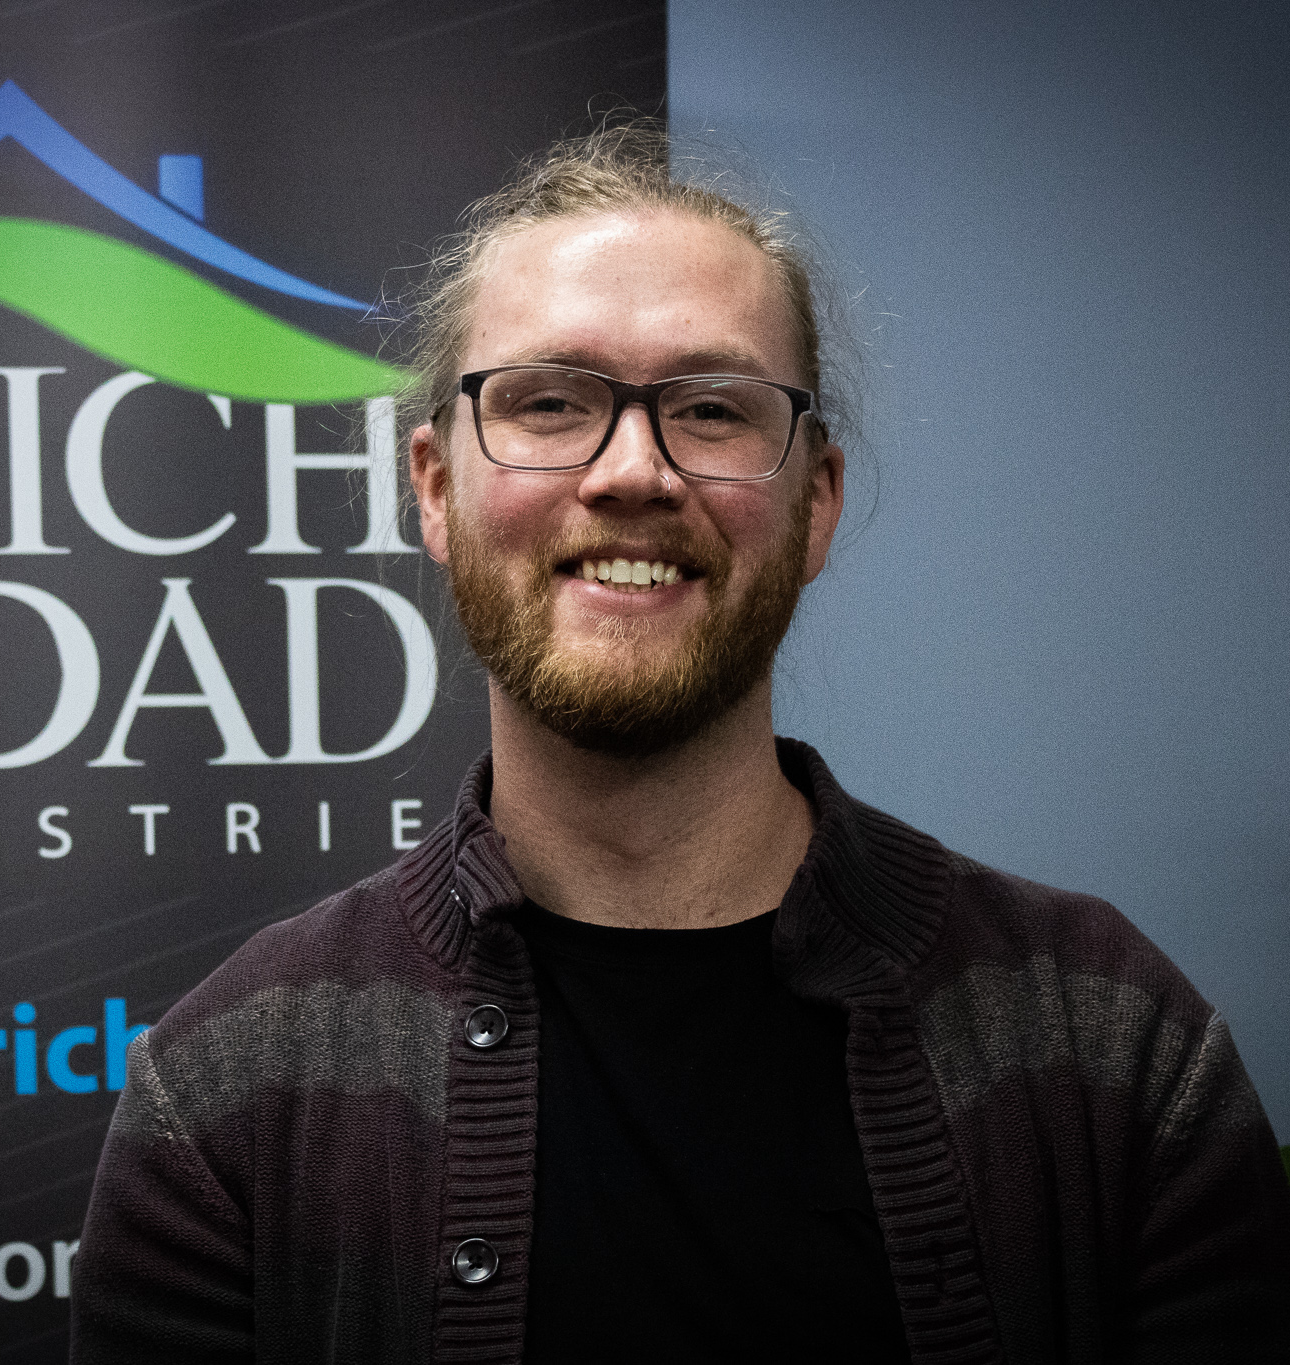 Jonathan Langille - Media & Communications Coordinator